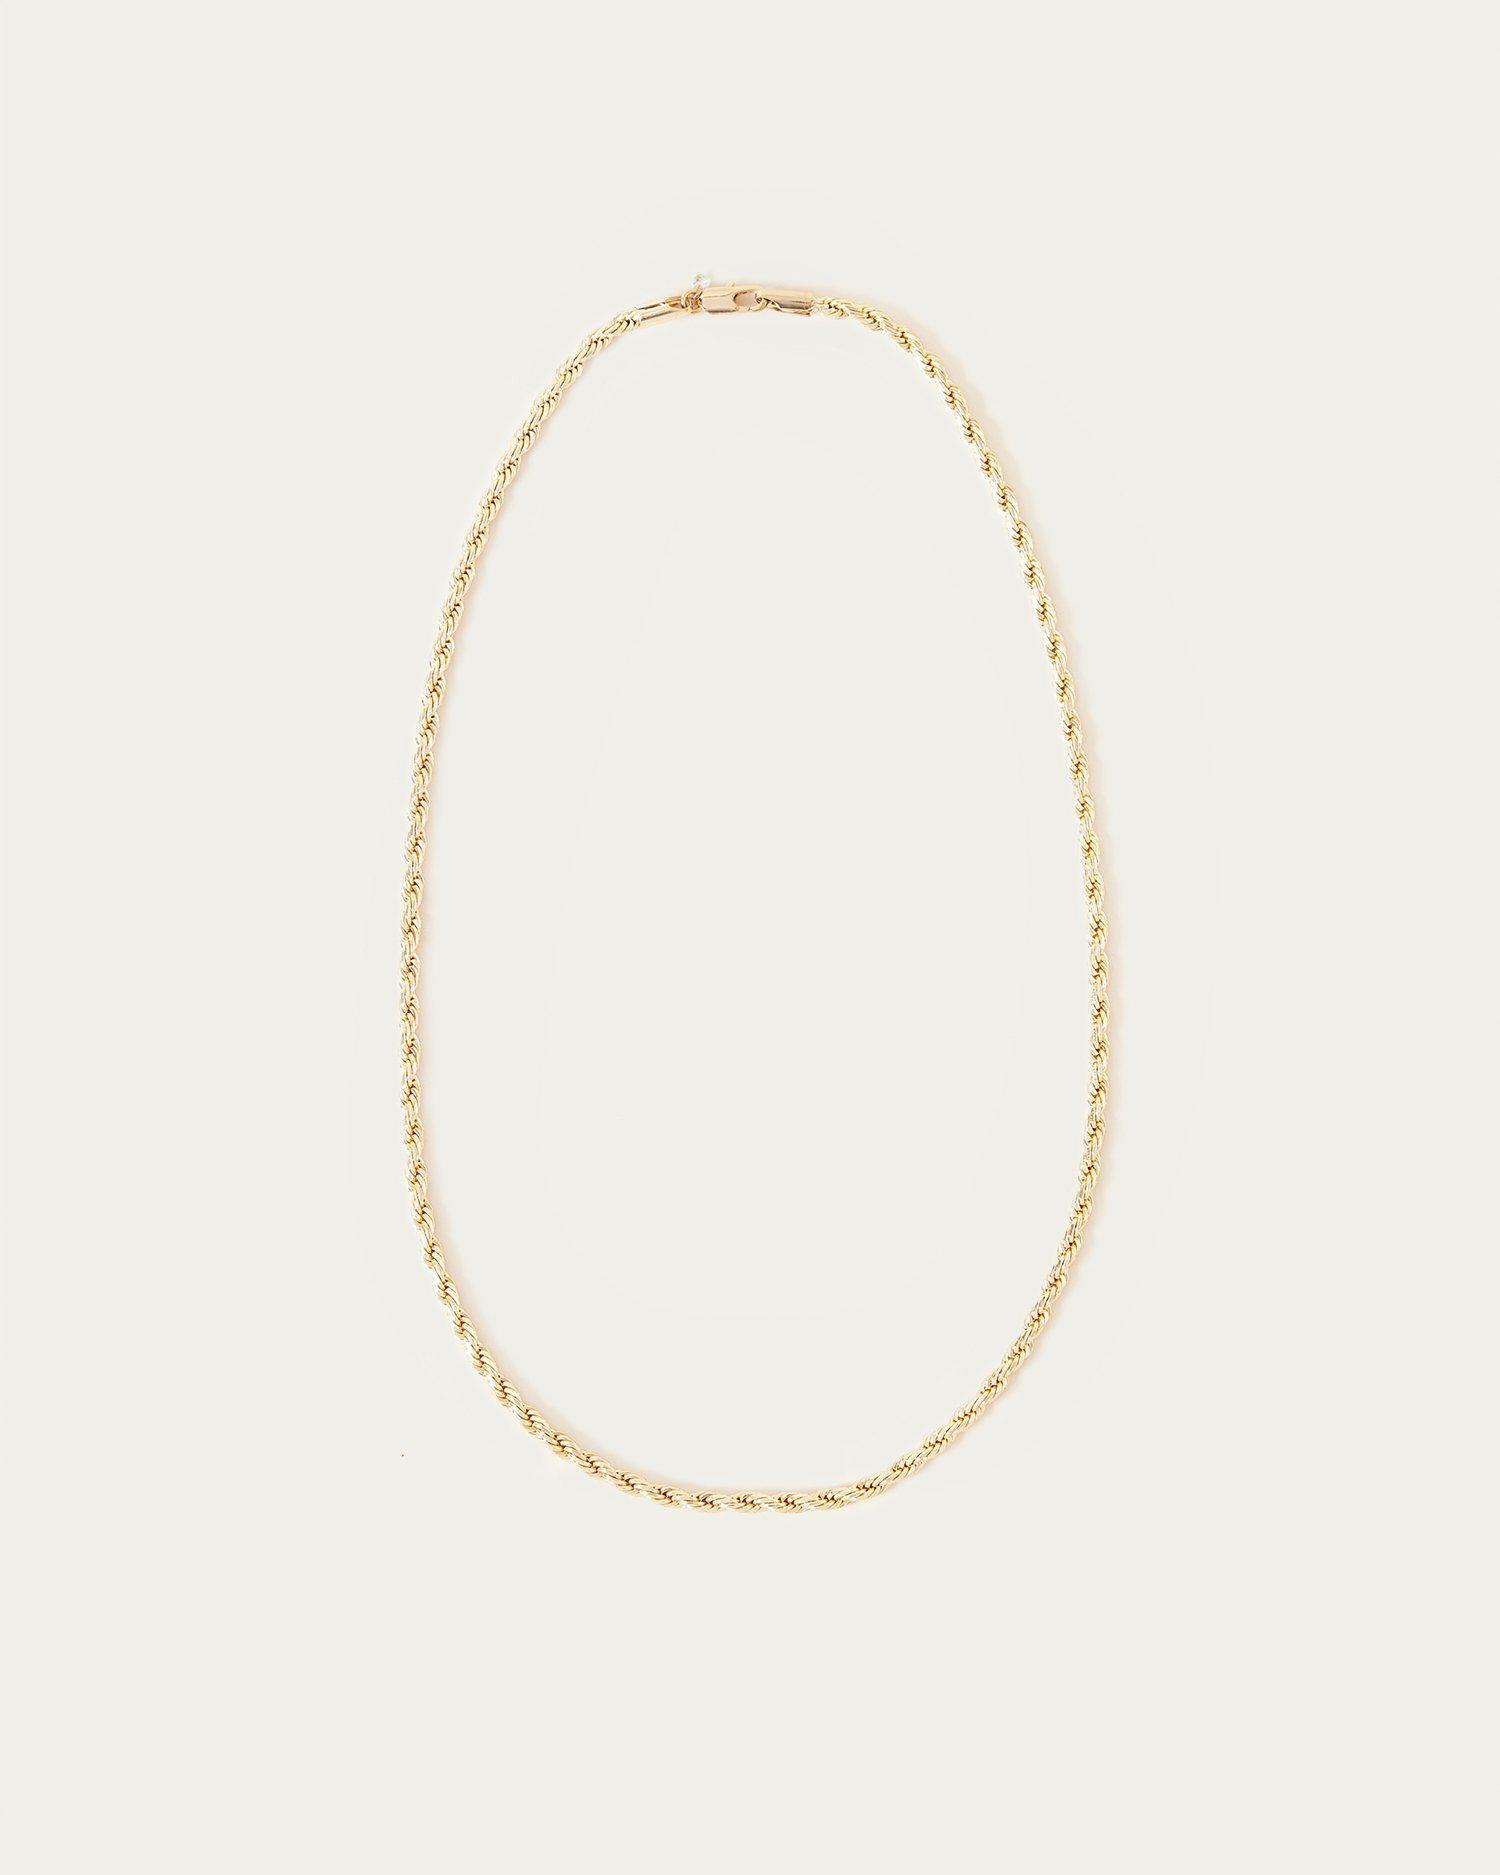 Sylvie Gold Twisted Chain Necklace